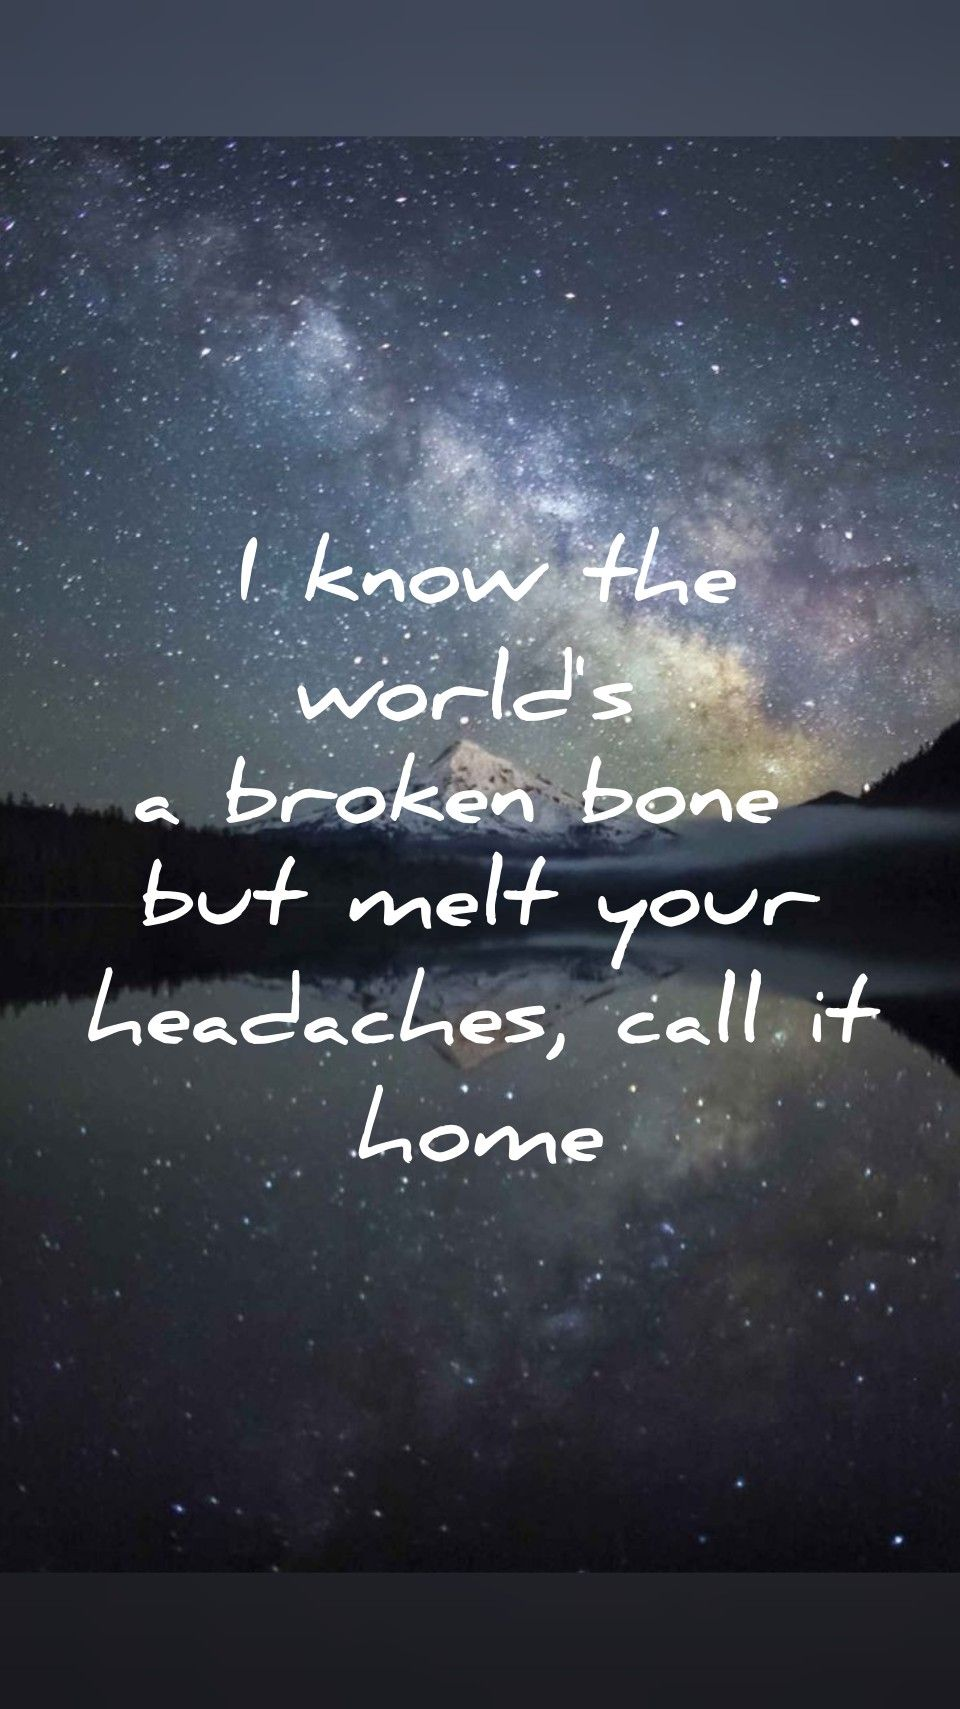 Northern Downpour Ugh Gives Me All The Feels Pop Punk Bands Beautiful Poetry Lyrics